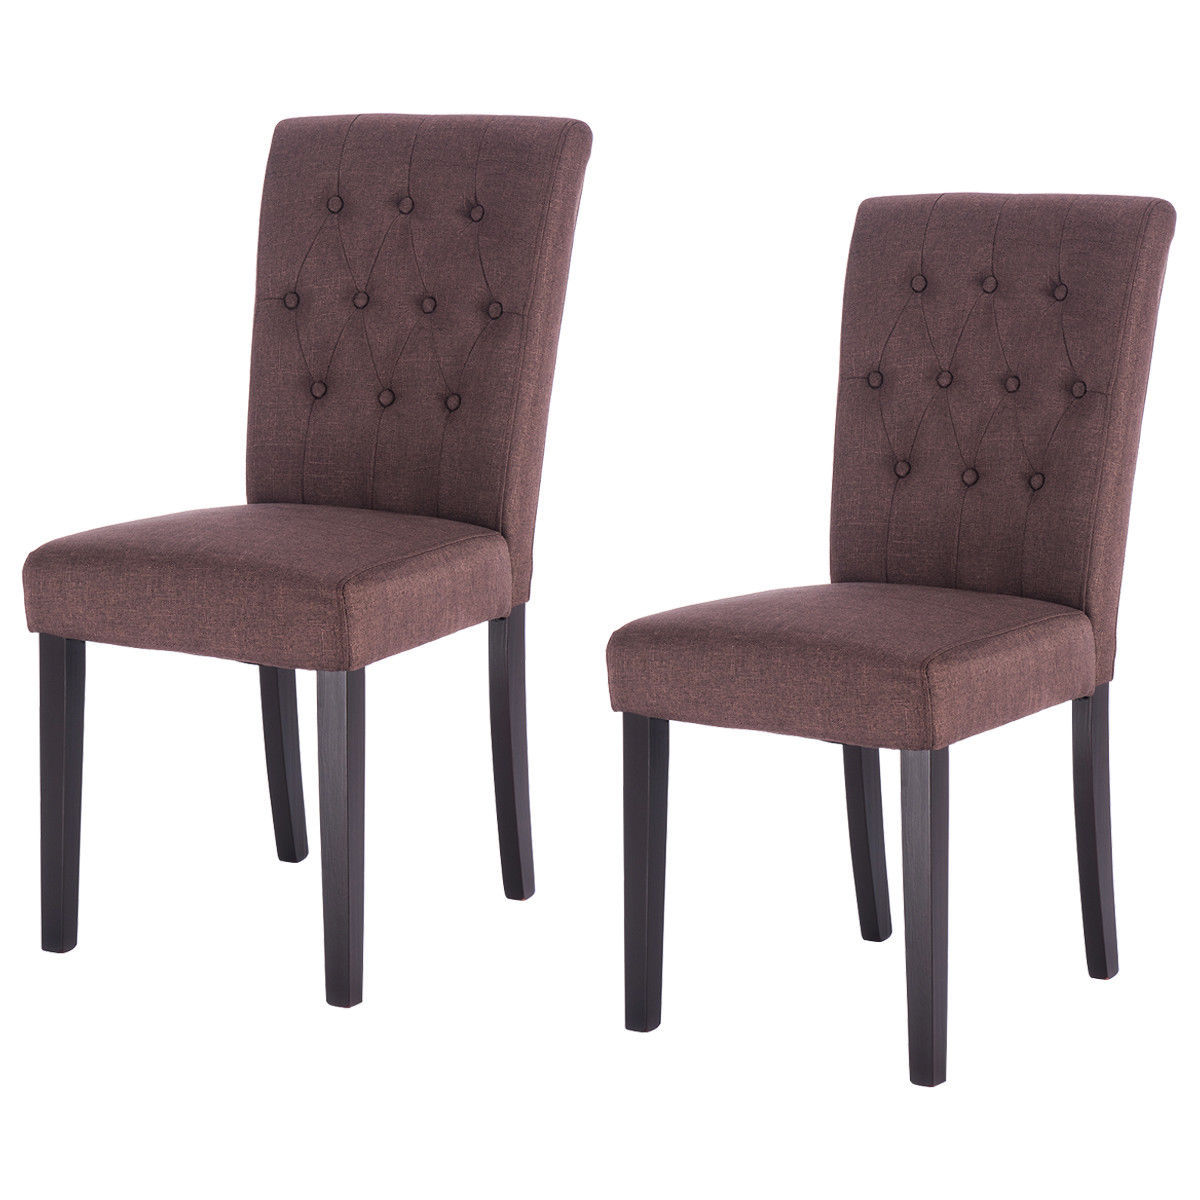 все цены на Giantex Set of 2 Modern Dining Chair Fabric Armless Accent Tufted Upholstered with Solid Wood Legs Furniture HW52778BN онлайн